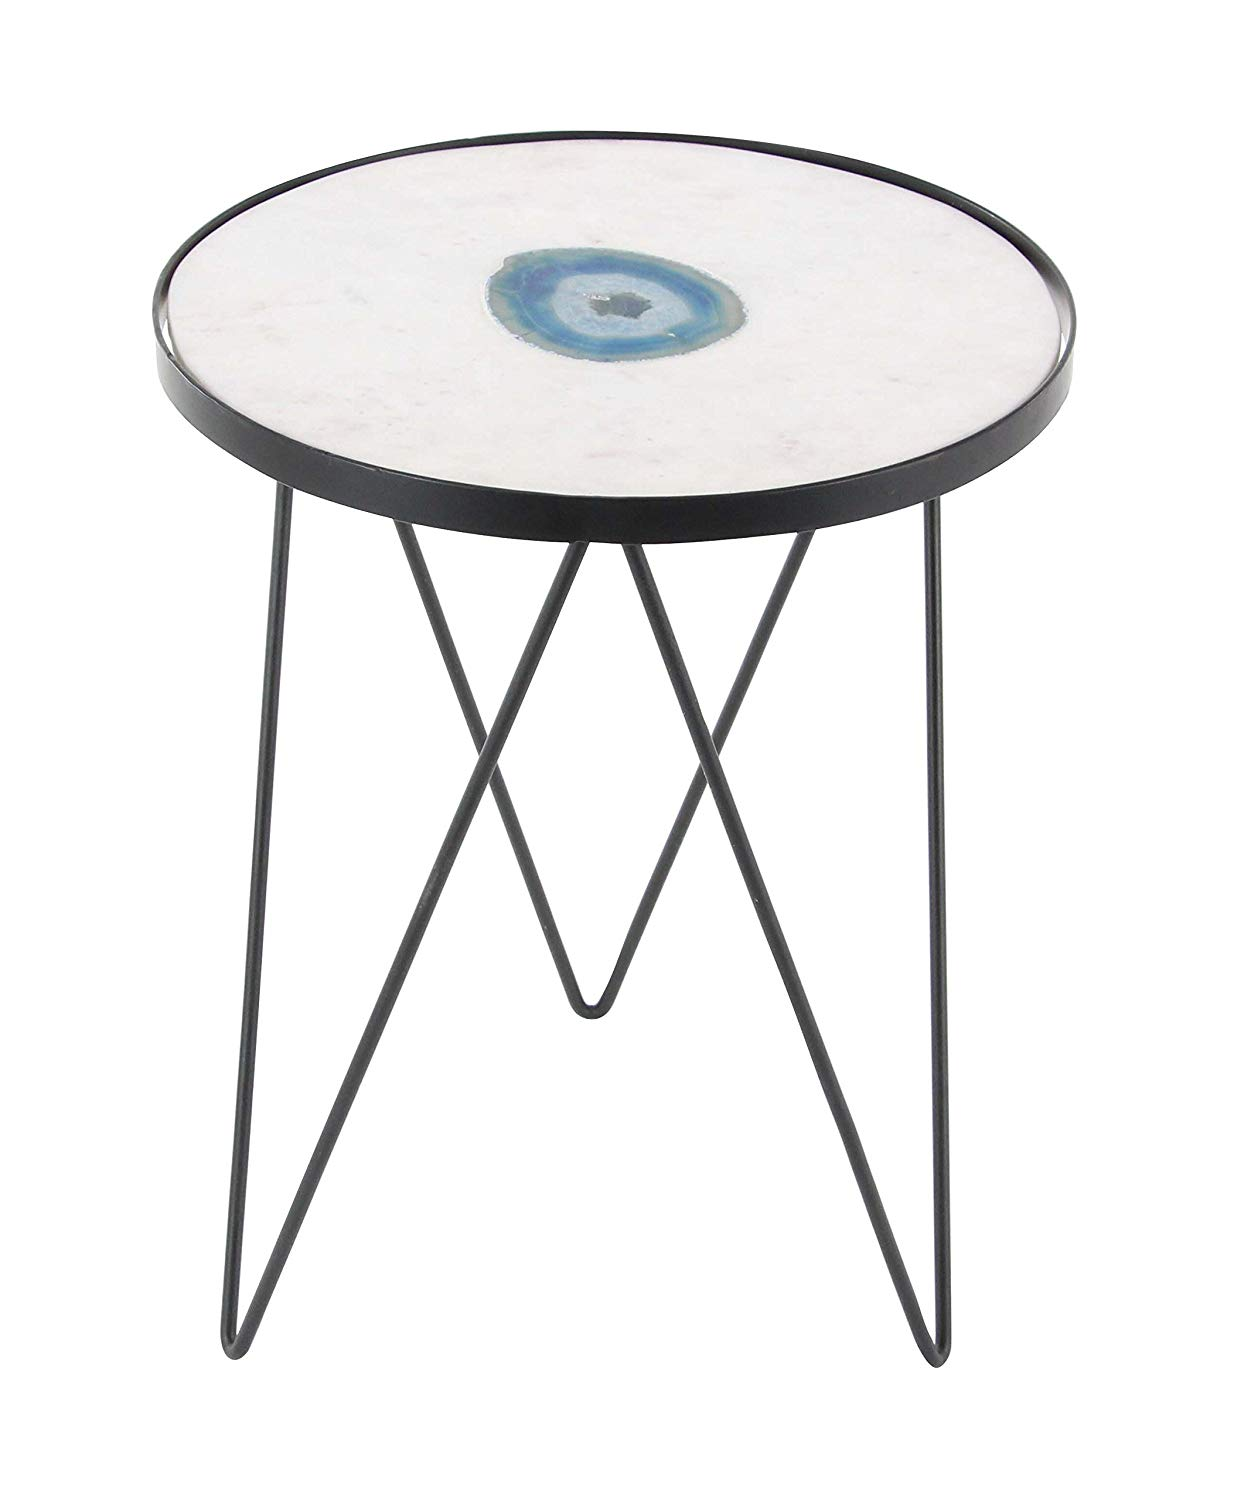 charming white marble and metal round accent table small for faux tablecloth pedestal wooden unfinished wood ideas covers decorating threshold side full size vintage hexagon grey